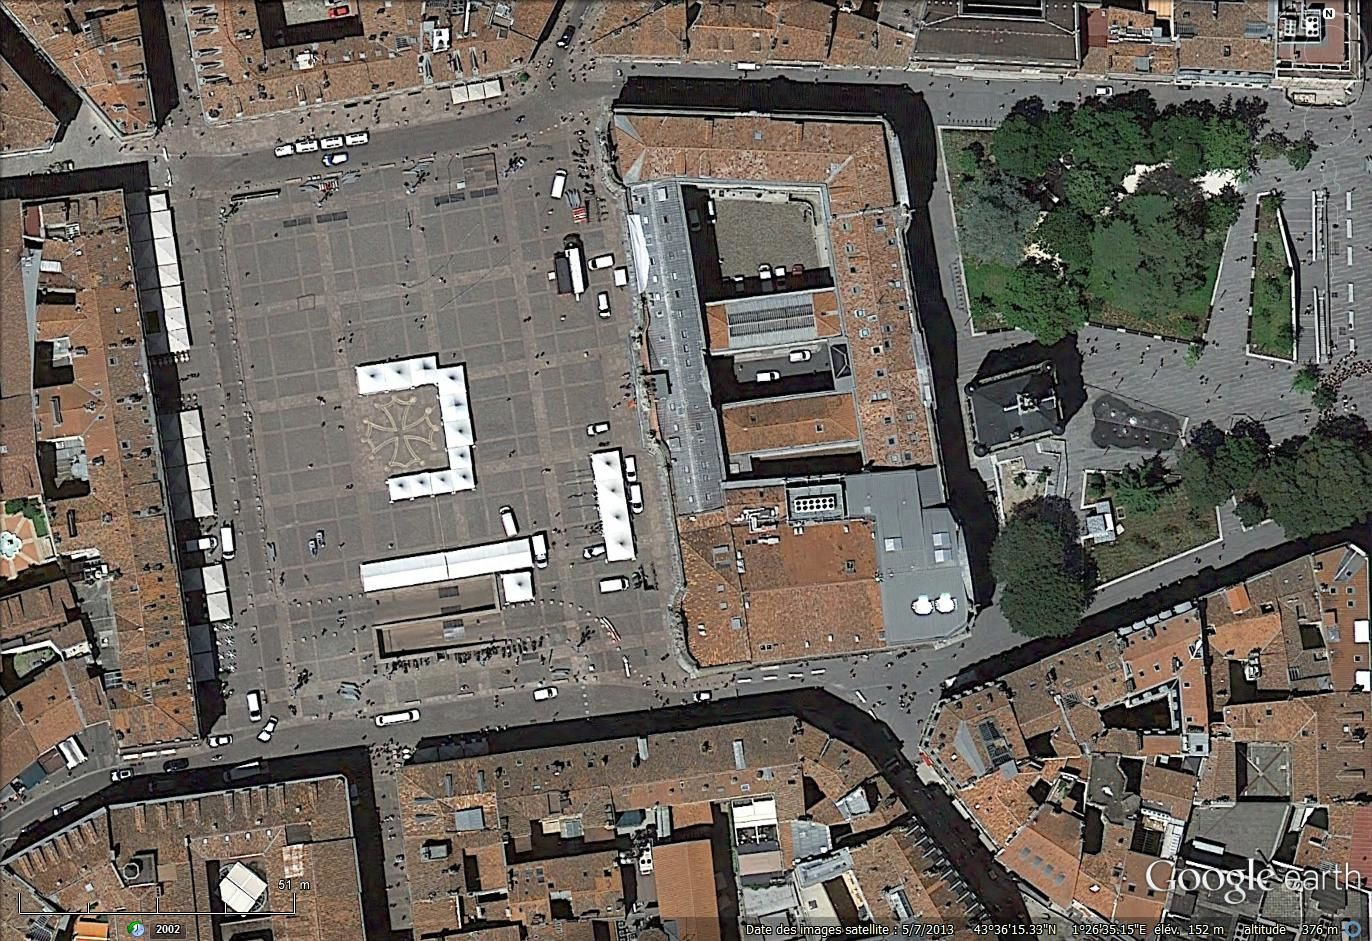 La place du Capitole vue en 213 par satellite via Google earth